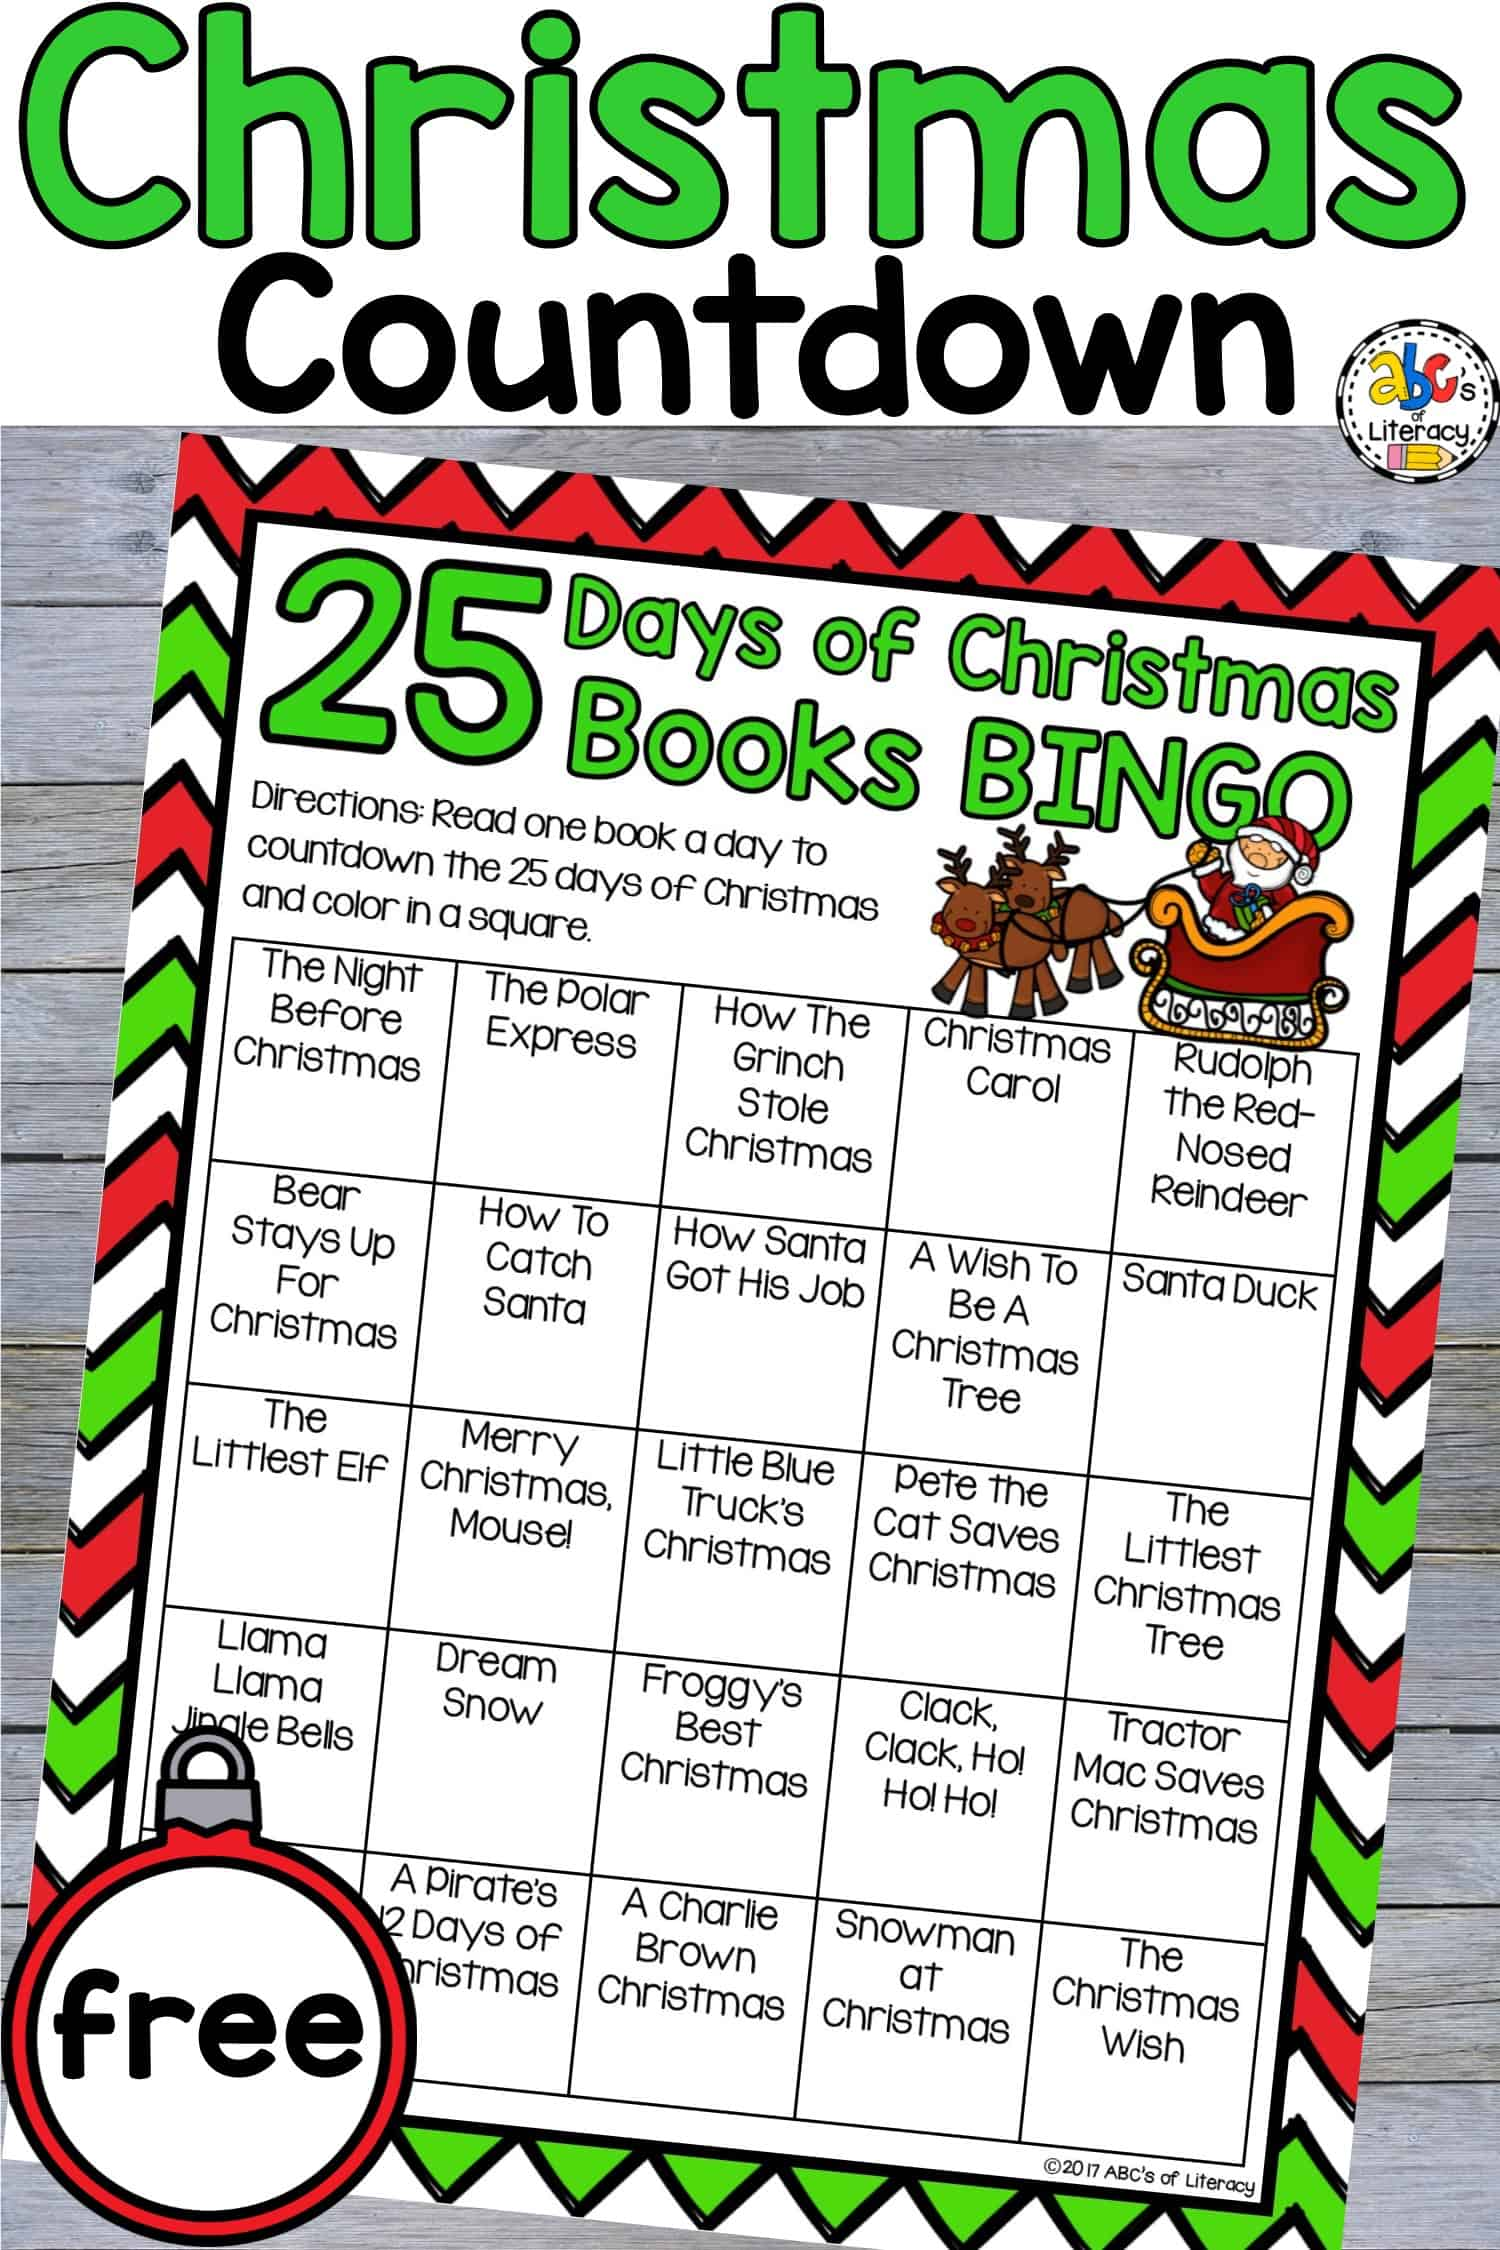 Countdown To Christmas With The 25 Days Of Christmas Books Bingo